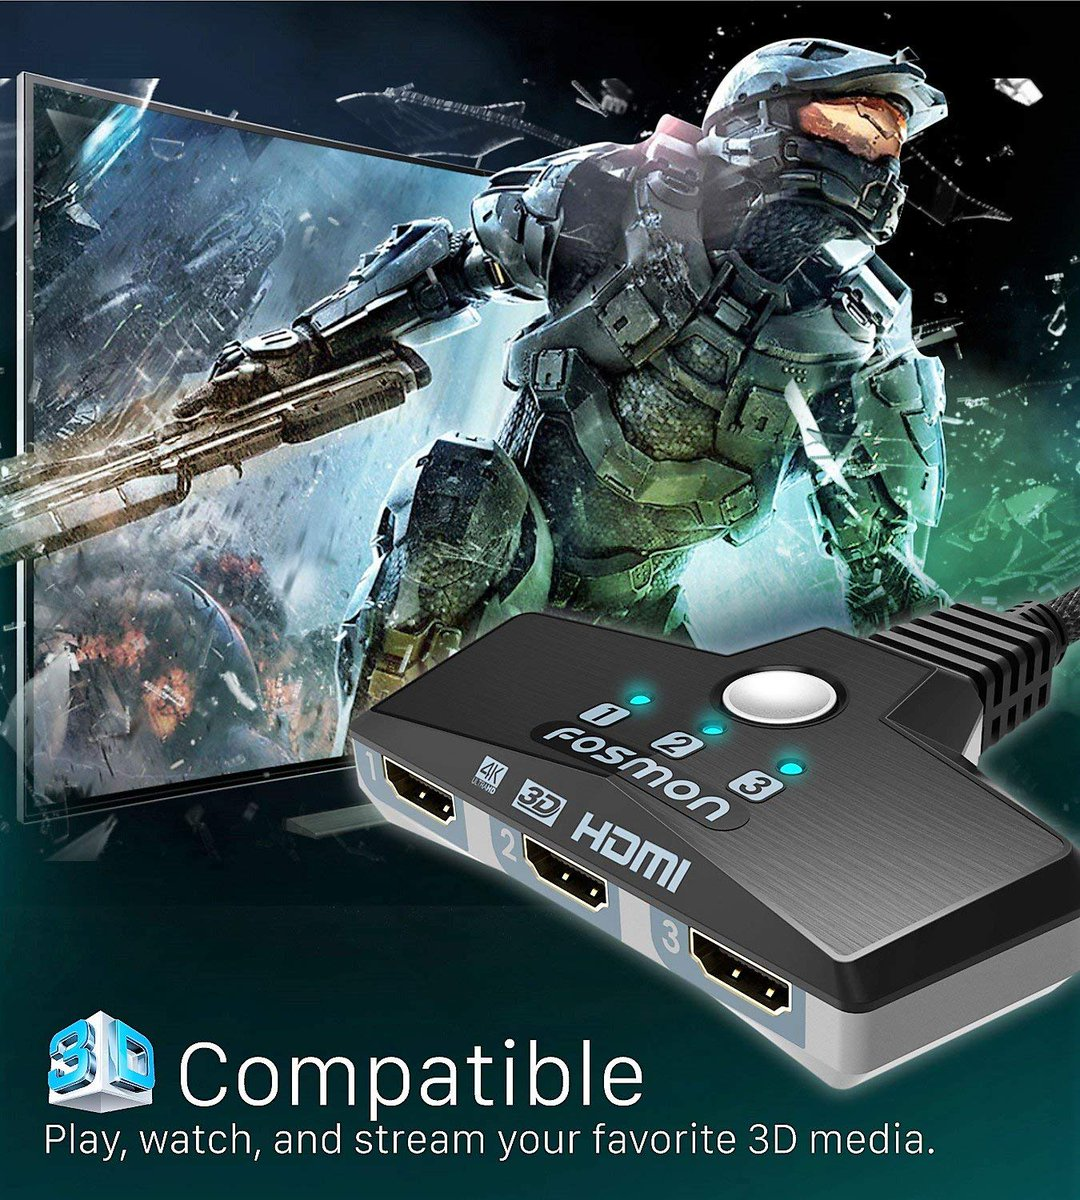 Easy access to all your gaming consoles with the Fosmon HDMI 4K Switch. Order yours today: https://t.co/mpZaZ8Lksj  #gaming #xbox #ps4 #halo #4k #hdmi #hdmiswitch #gamer #fosmon https://t.co/ppqoEXfyWA